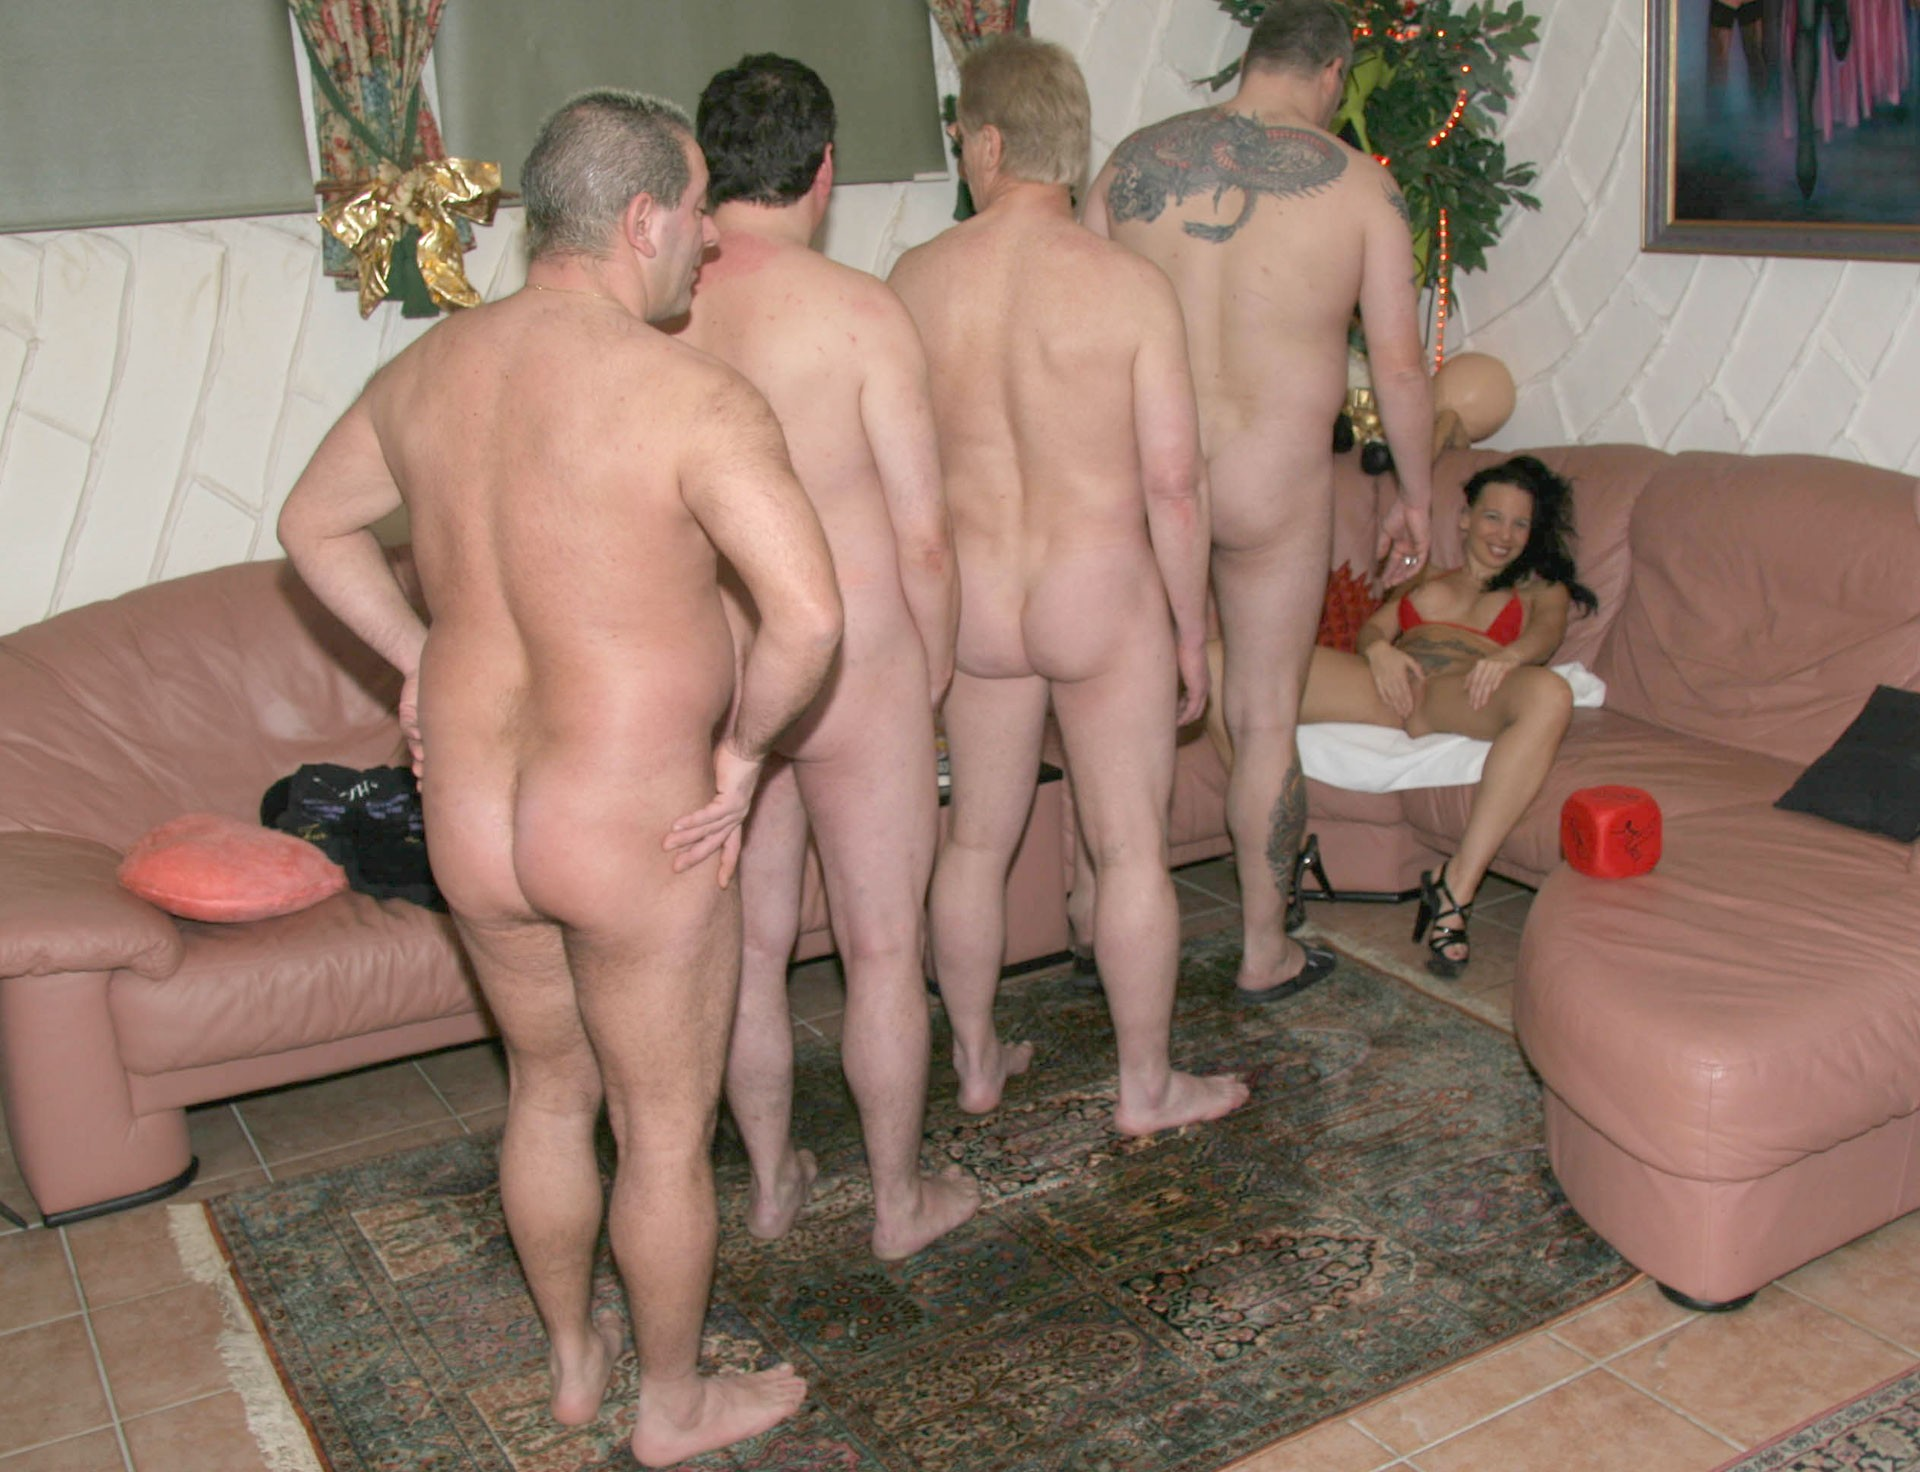 gang bang party erstes mal schwuler sex